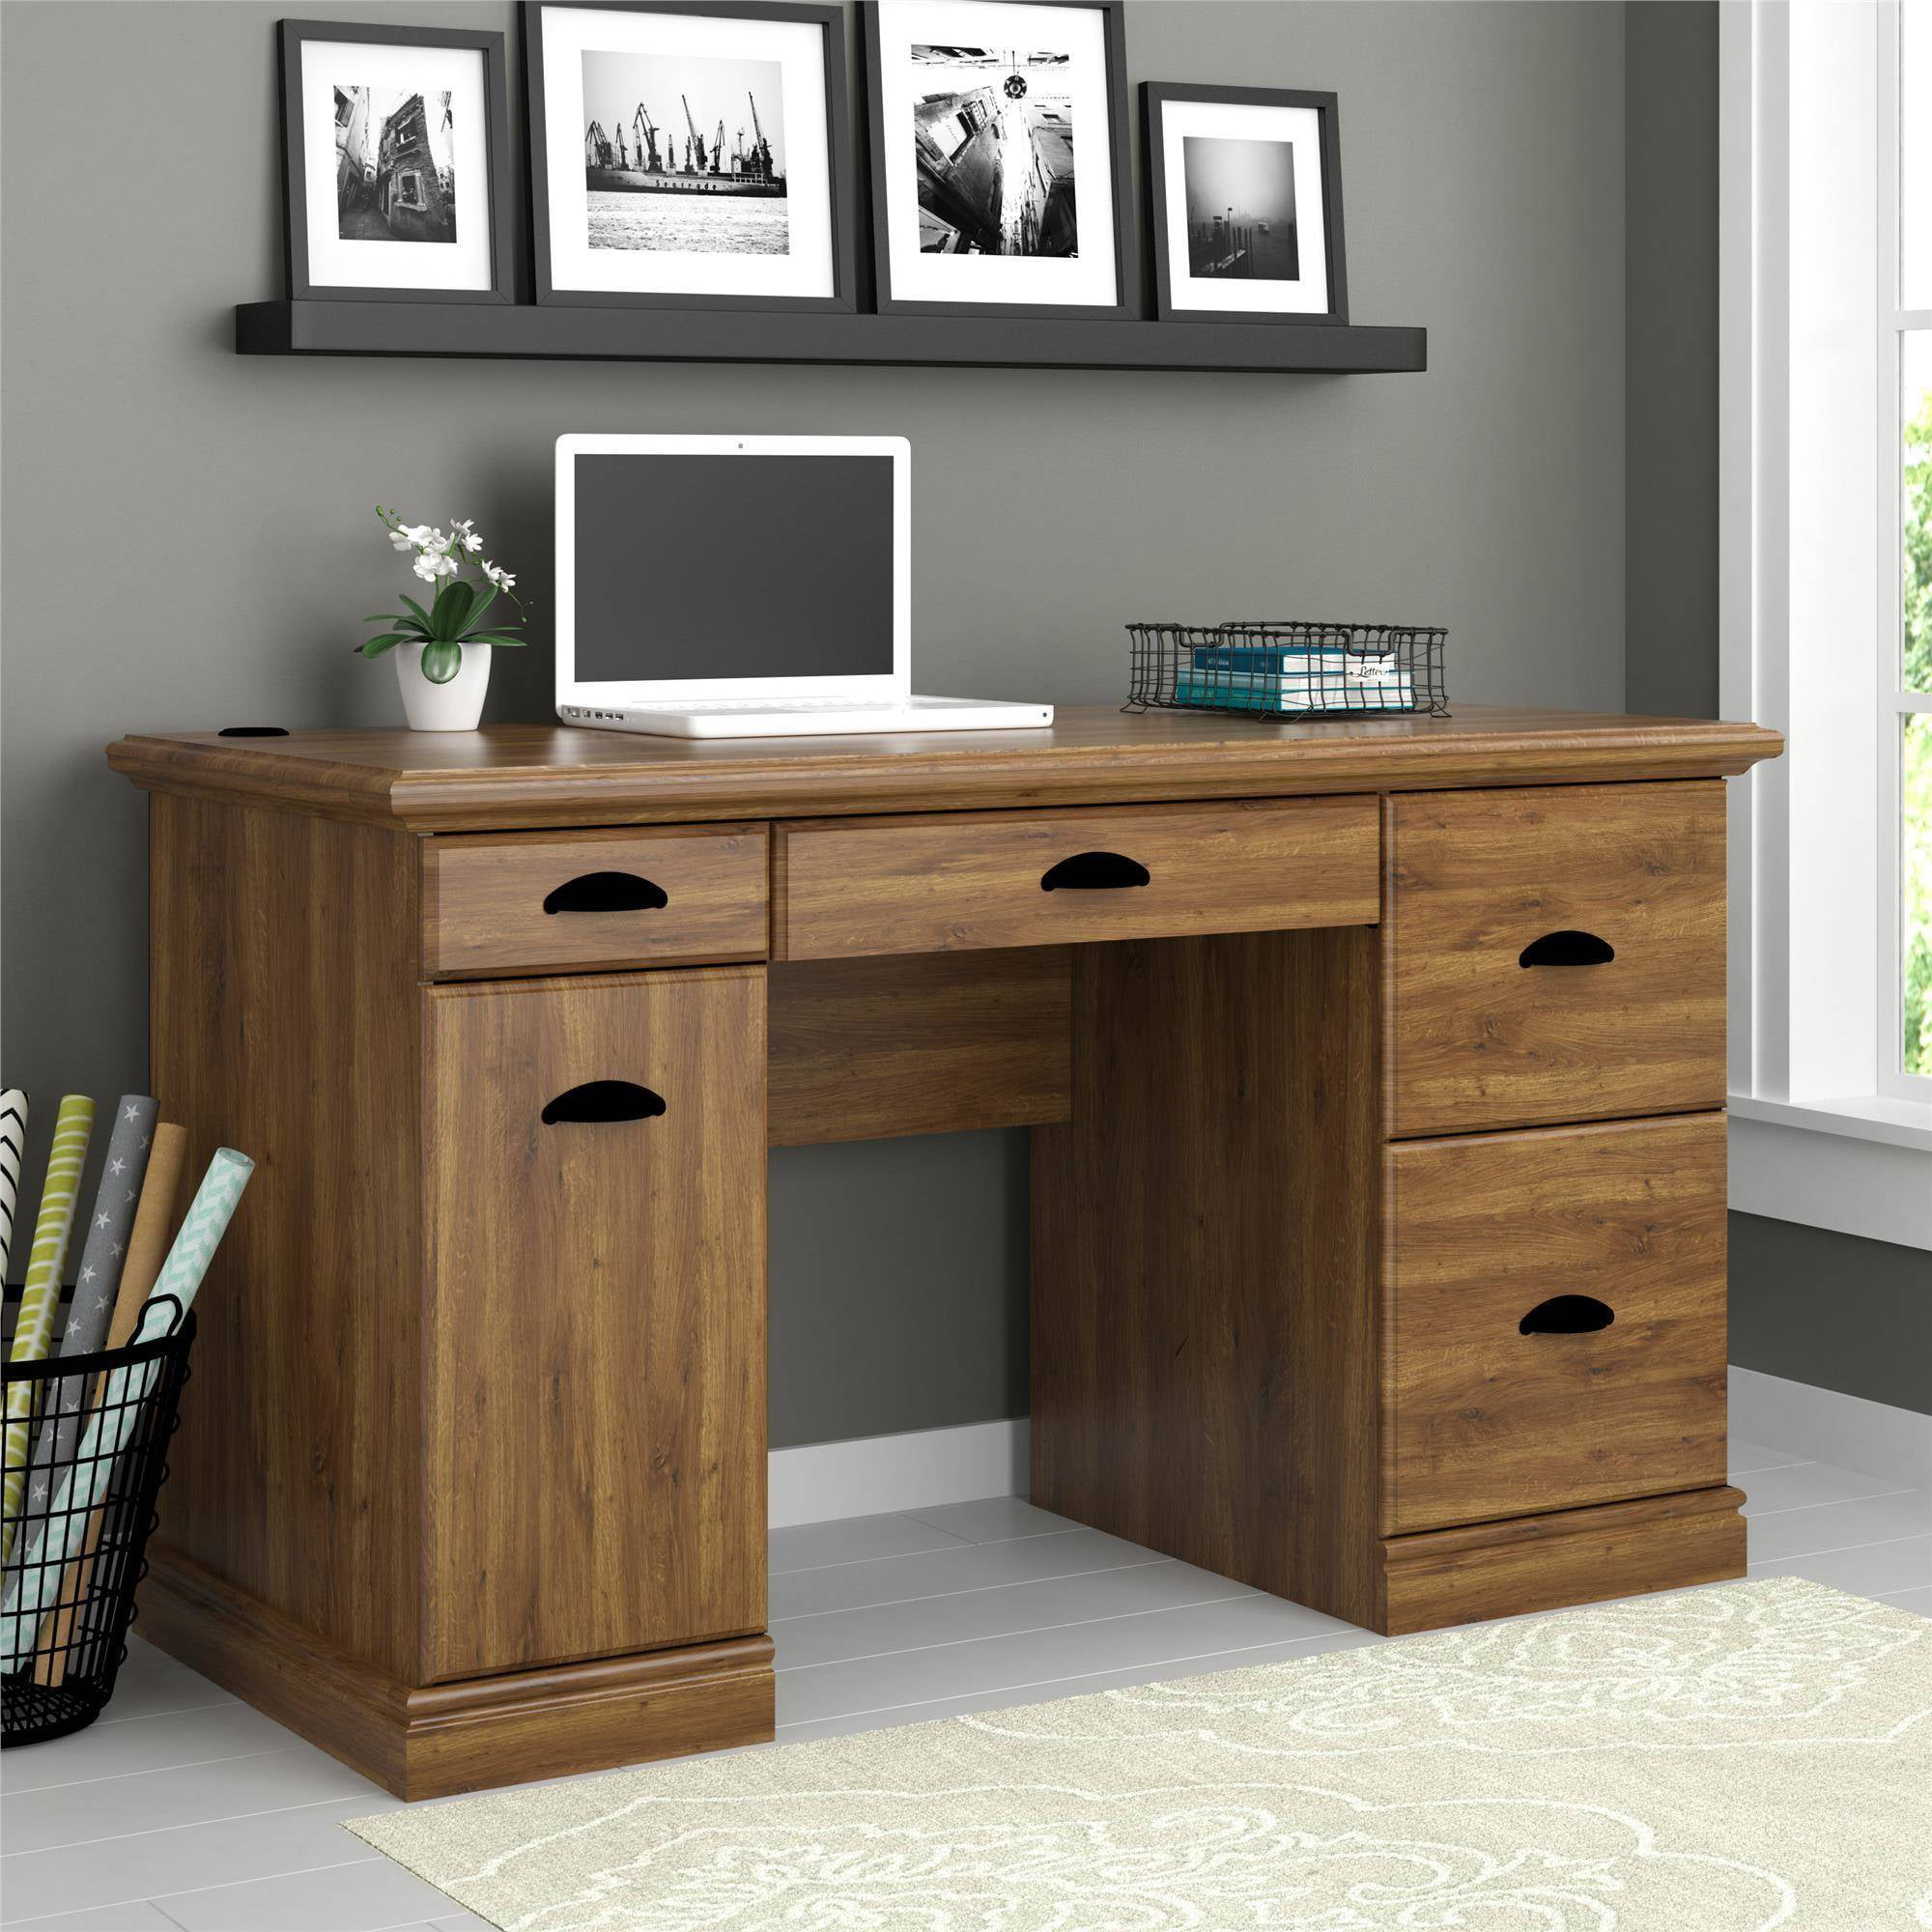 Home Office Desk Furniture home office desks furniture wonderful modern desk desk design stunning 1 Better Homes And Gardens Computer Desk Brown Oak Walmartcom